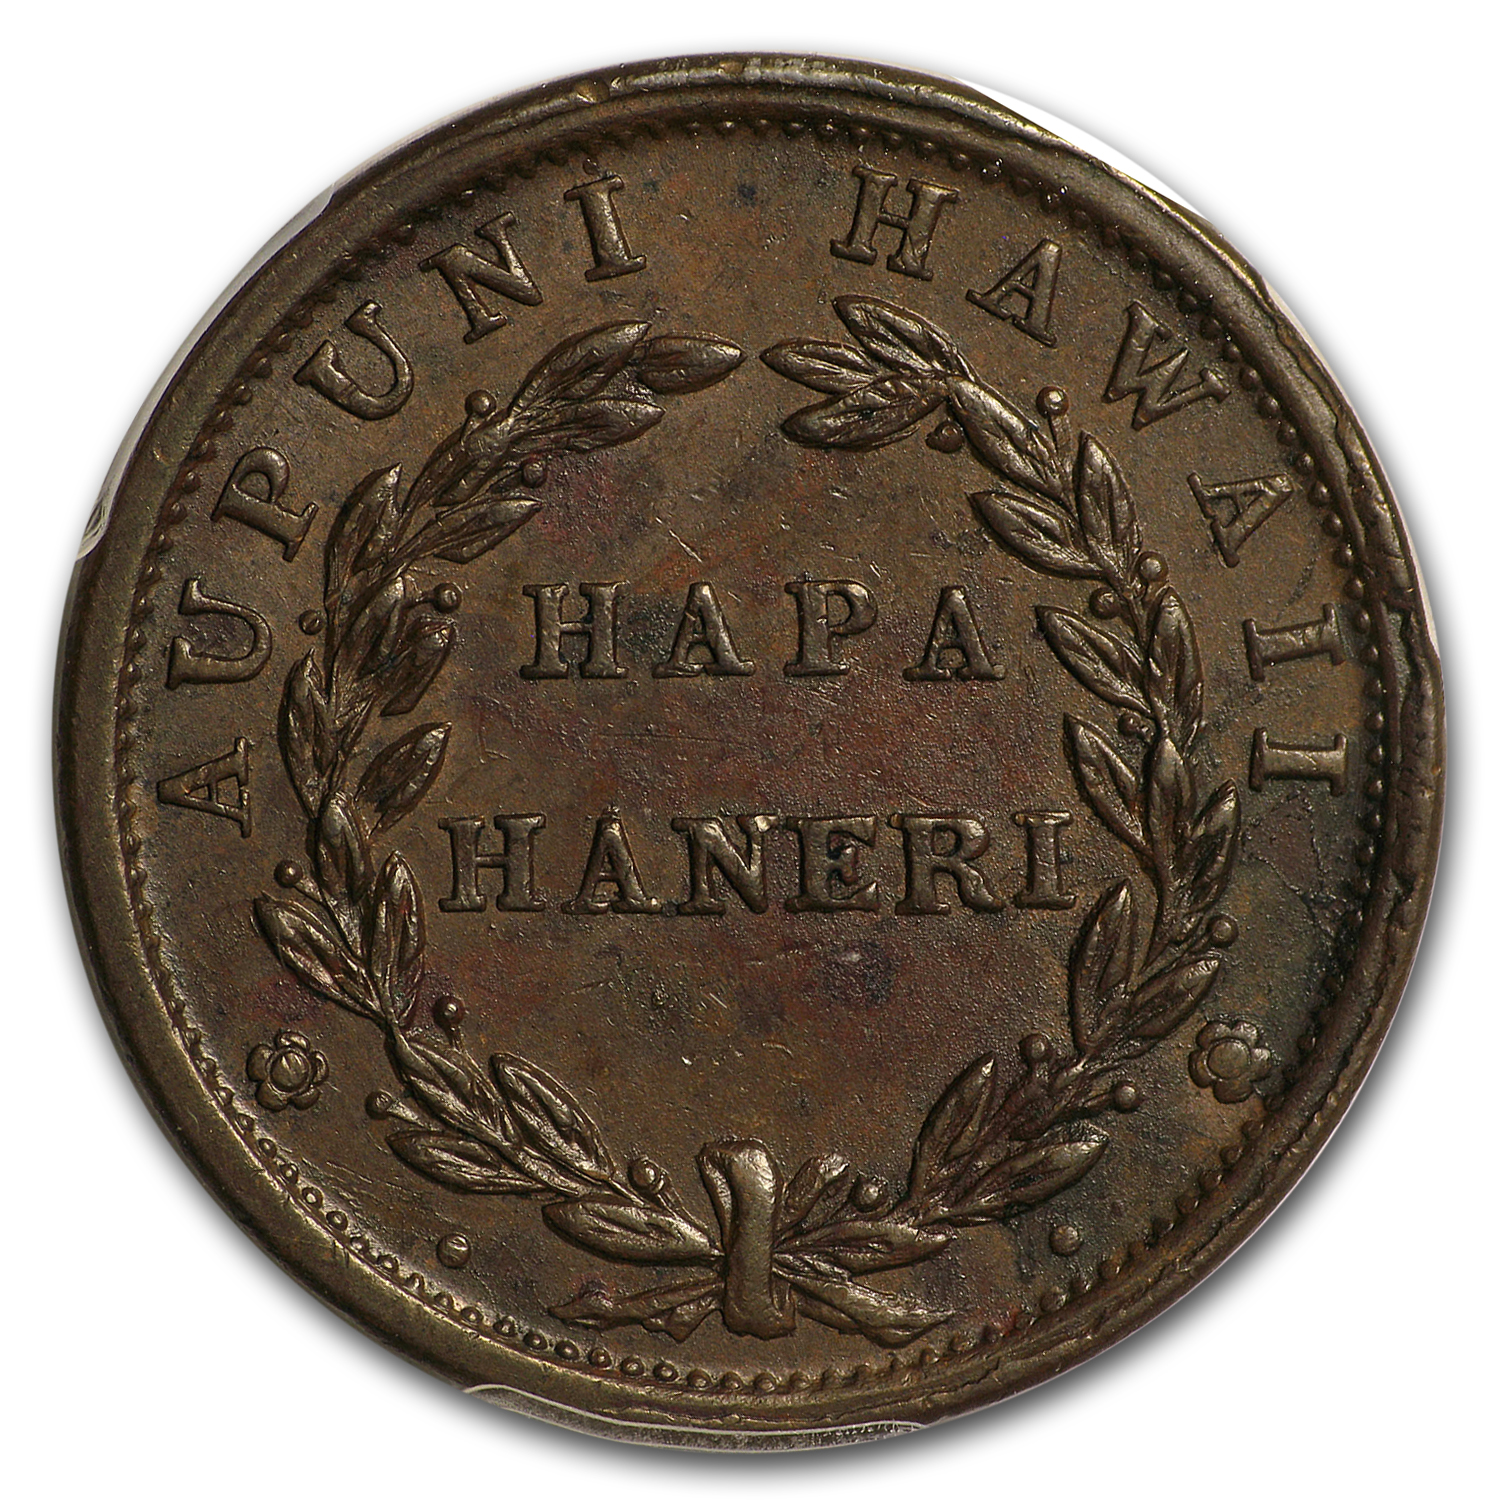 1847 Hawaii Cent AU-58 PCGS